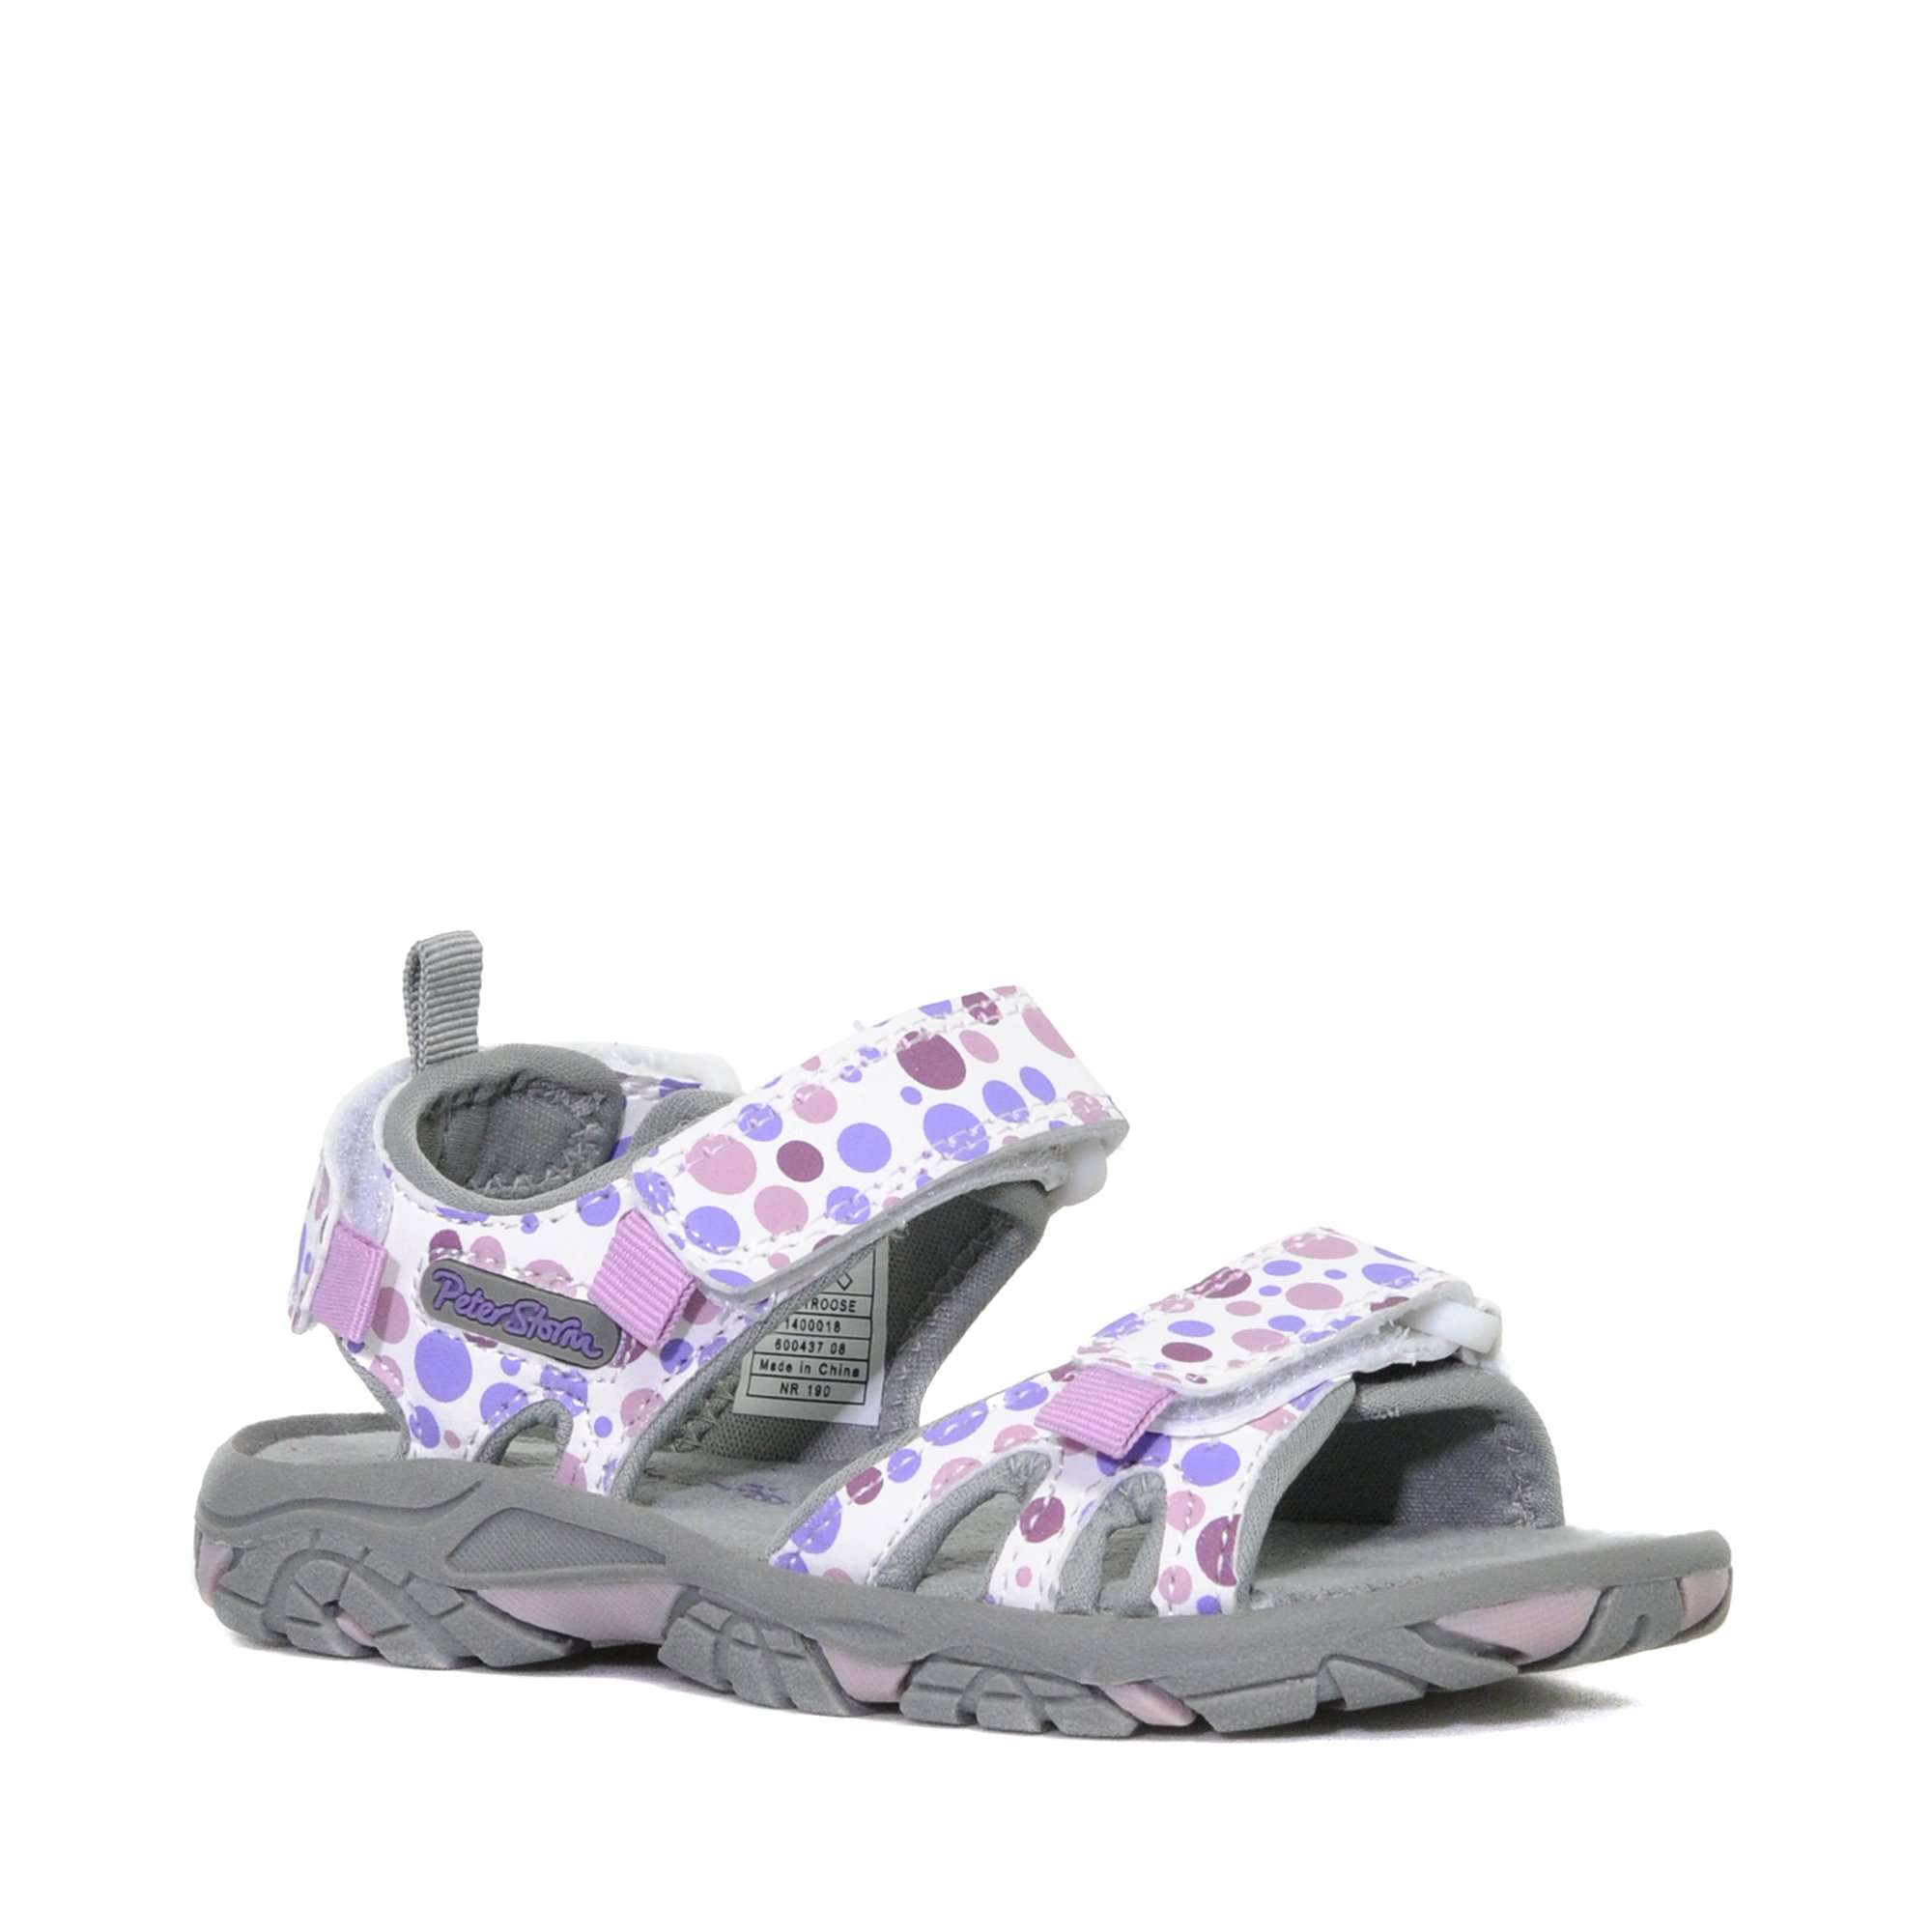 PETER STORM Girls' Troose Sandals